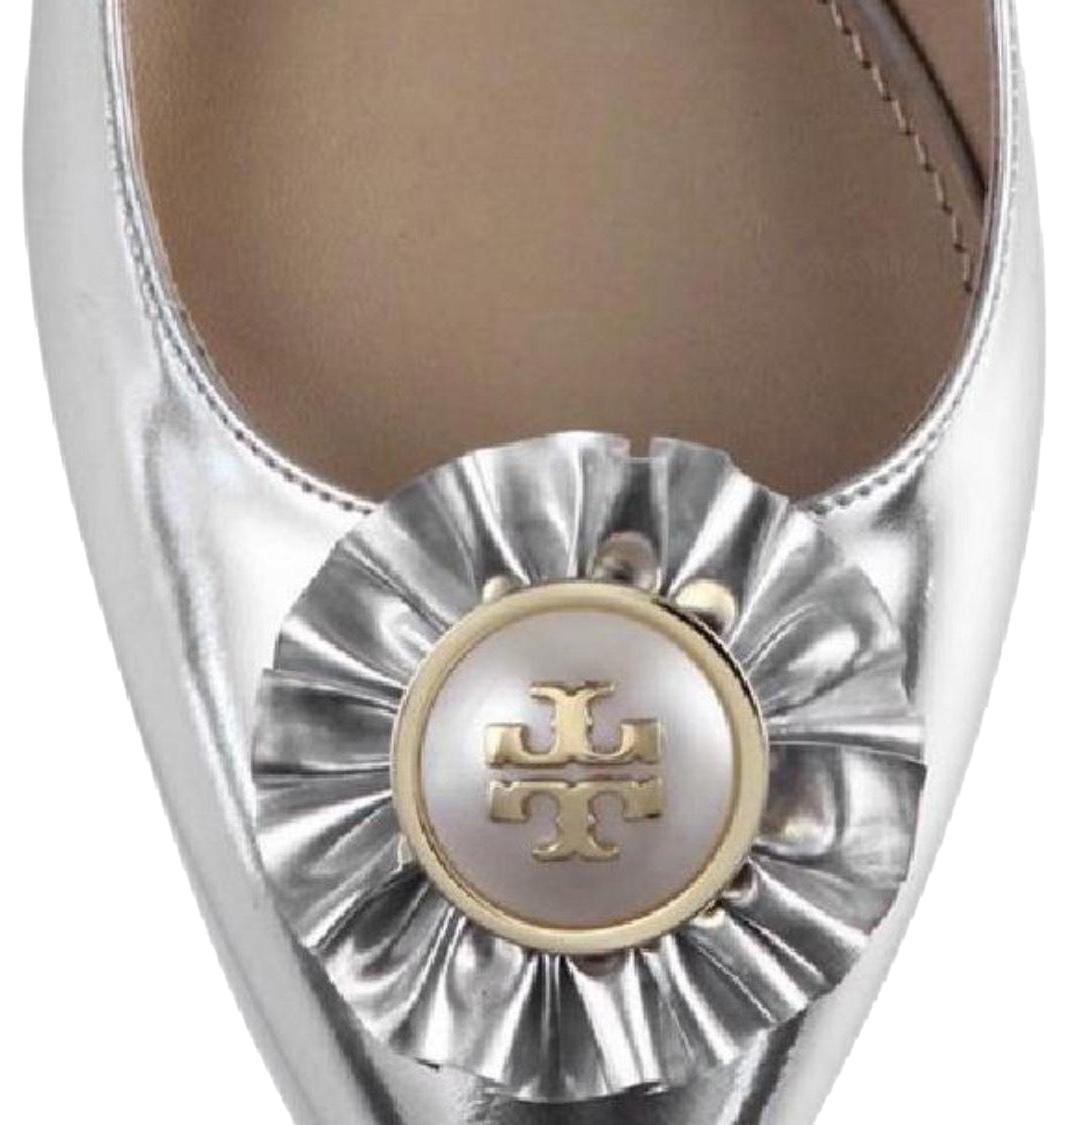 bc9808eed4f3d2 Tory Burch Silver Melody Flats Size US 8 8 8 Regular (M